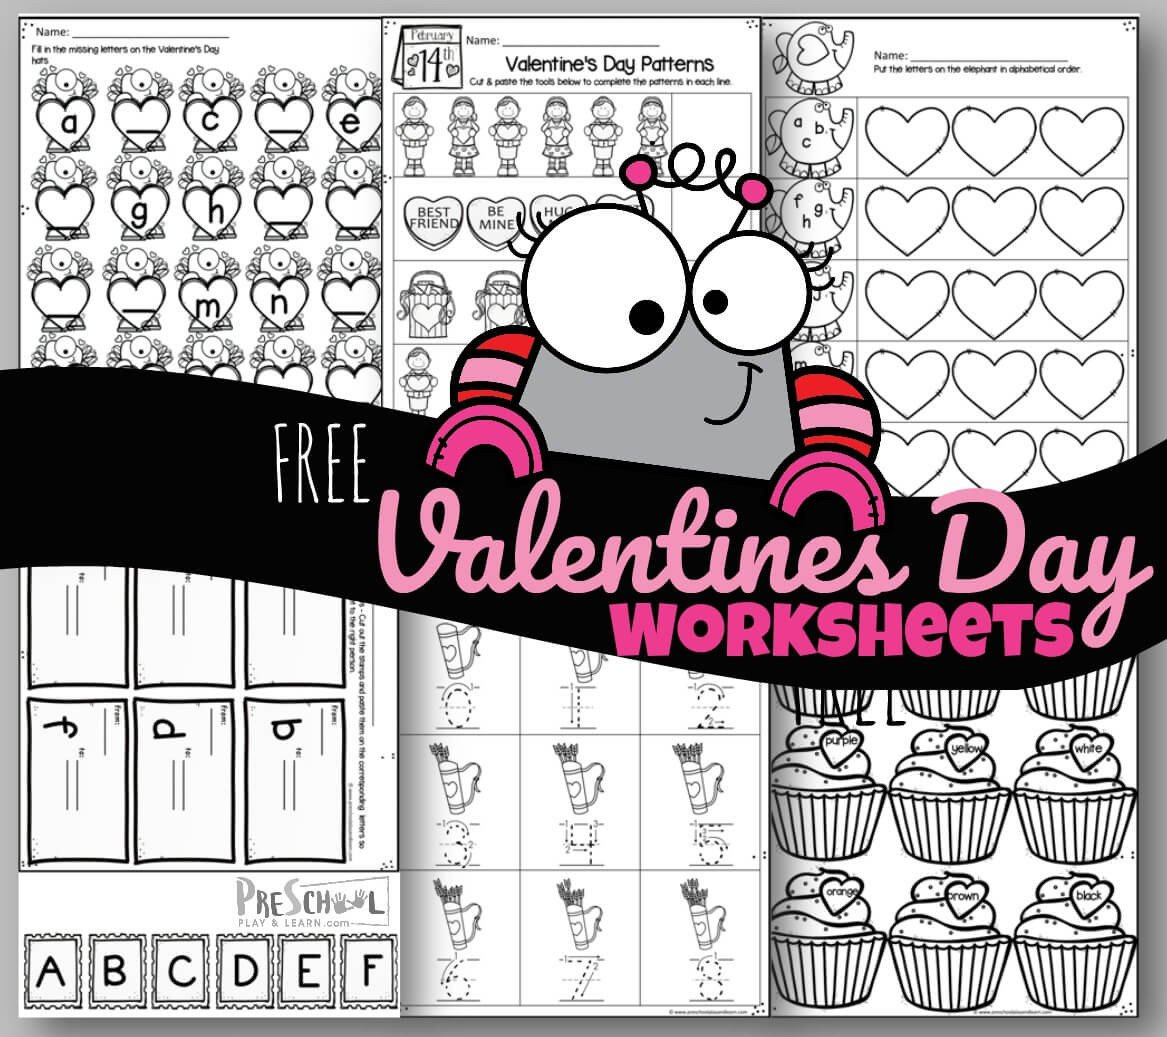 Valentines Day Kindergarten Worksheets tons Of Free Valentines Day Worksheets